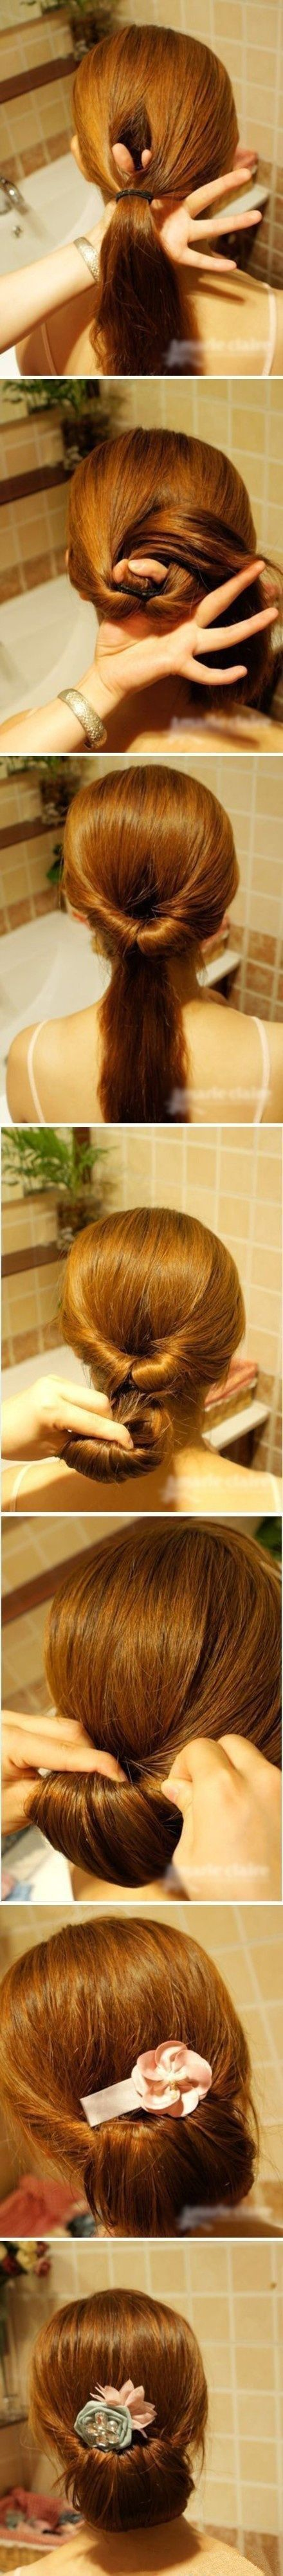 Terrific 1000 Ideas About Easy Updo On Pinterest Colored Hair Tips Easy Hairstyle Inspiration Daily Dogsangcom